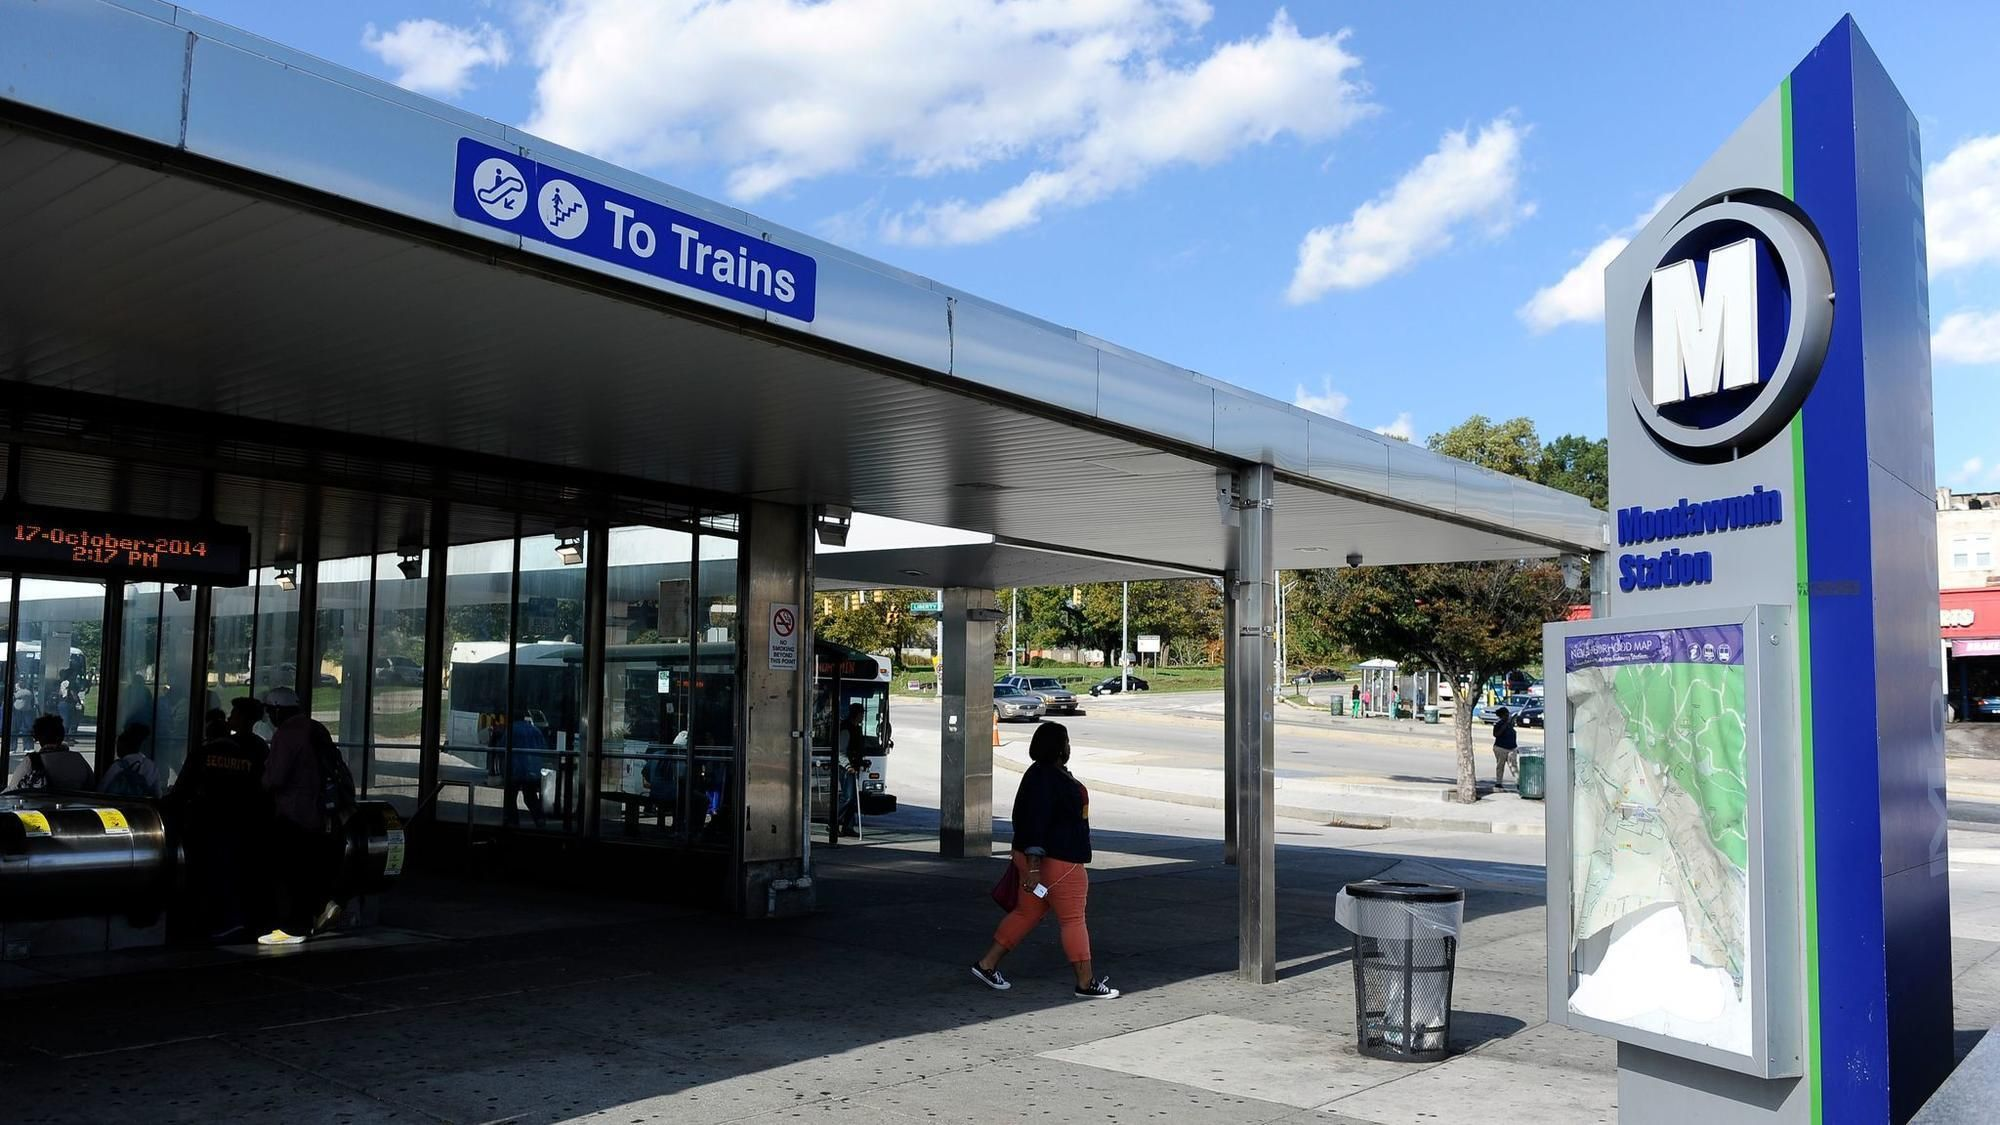 Entire baltimore metro system to close for a month for